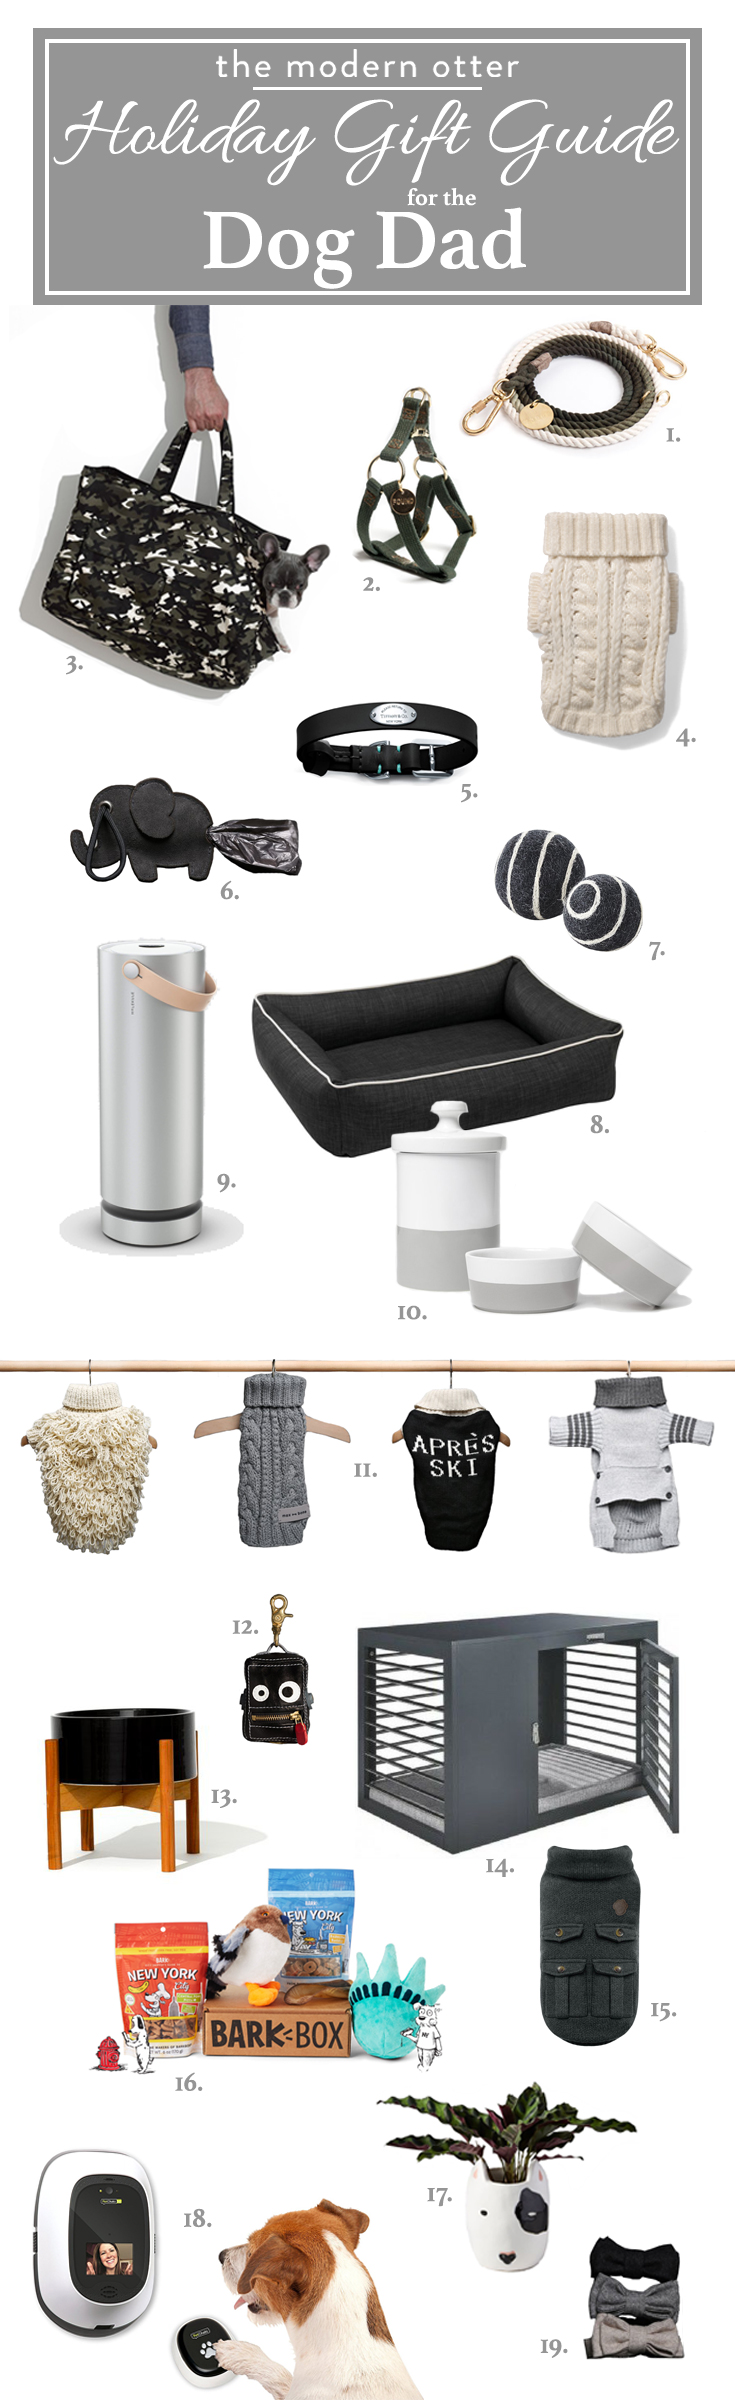 The Modern Otter Holiday Gift Guide for the Dog Dad